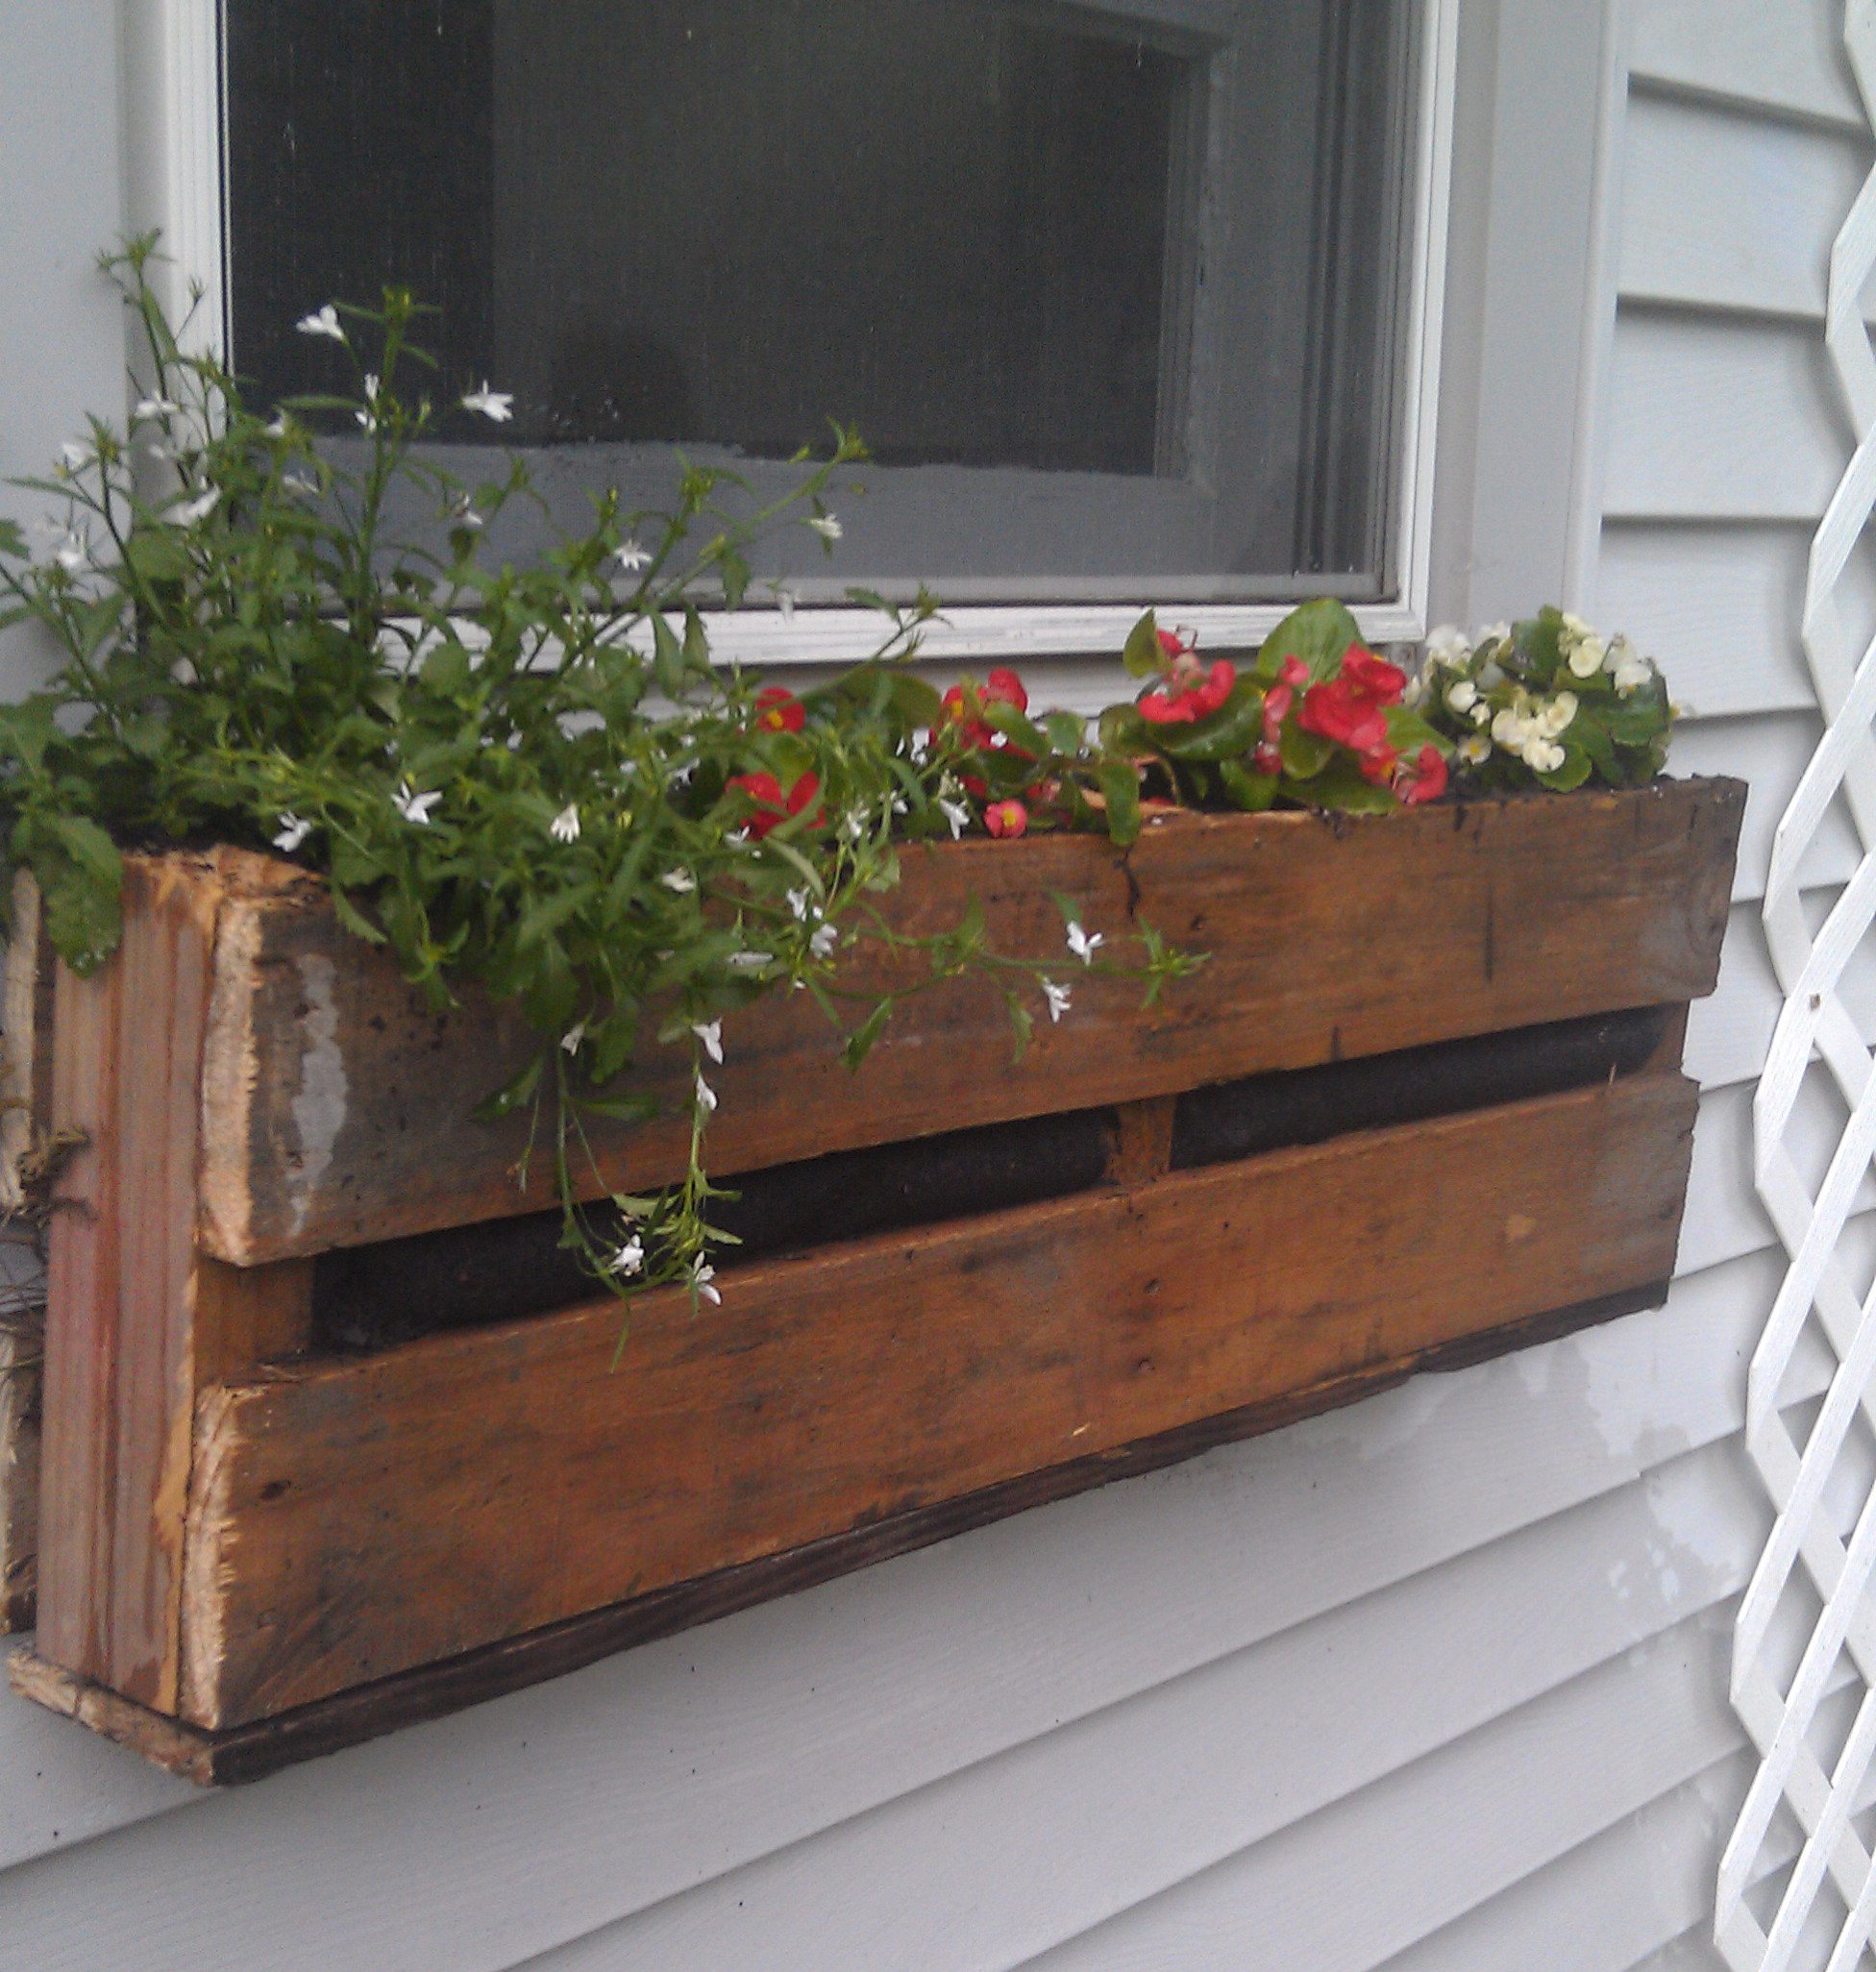 Best ideas about DIY Window Planter Box . Save or Pin Pallet Planter Now.